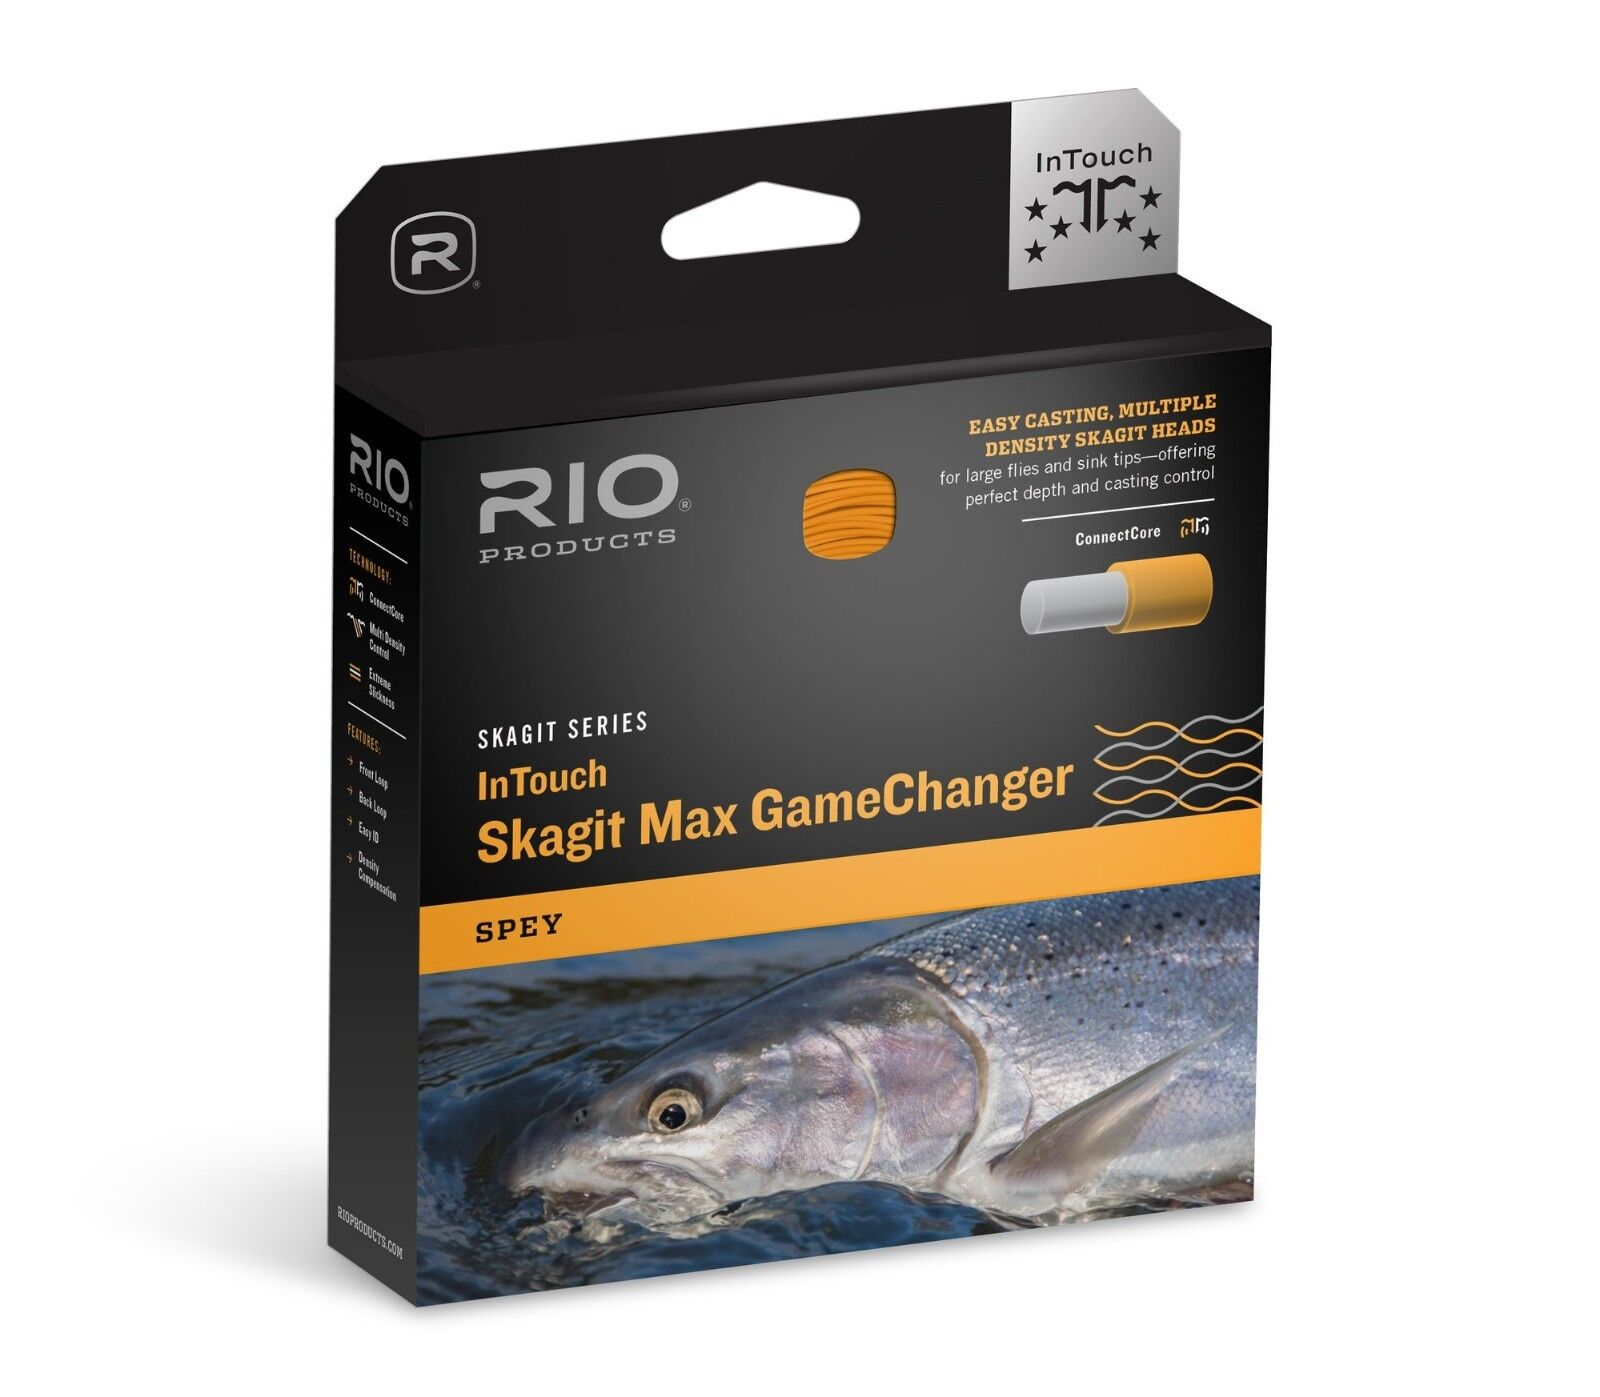 NEW RIO SKAGIT MAX GAMECHANGER 550-GR WT F H I S3 SPEY ROD SHOOTING HEAD